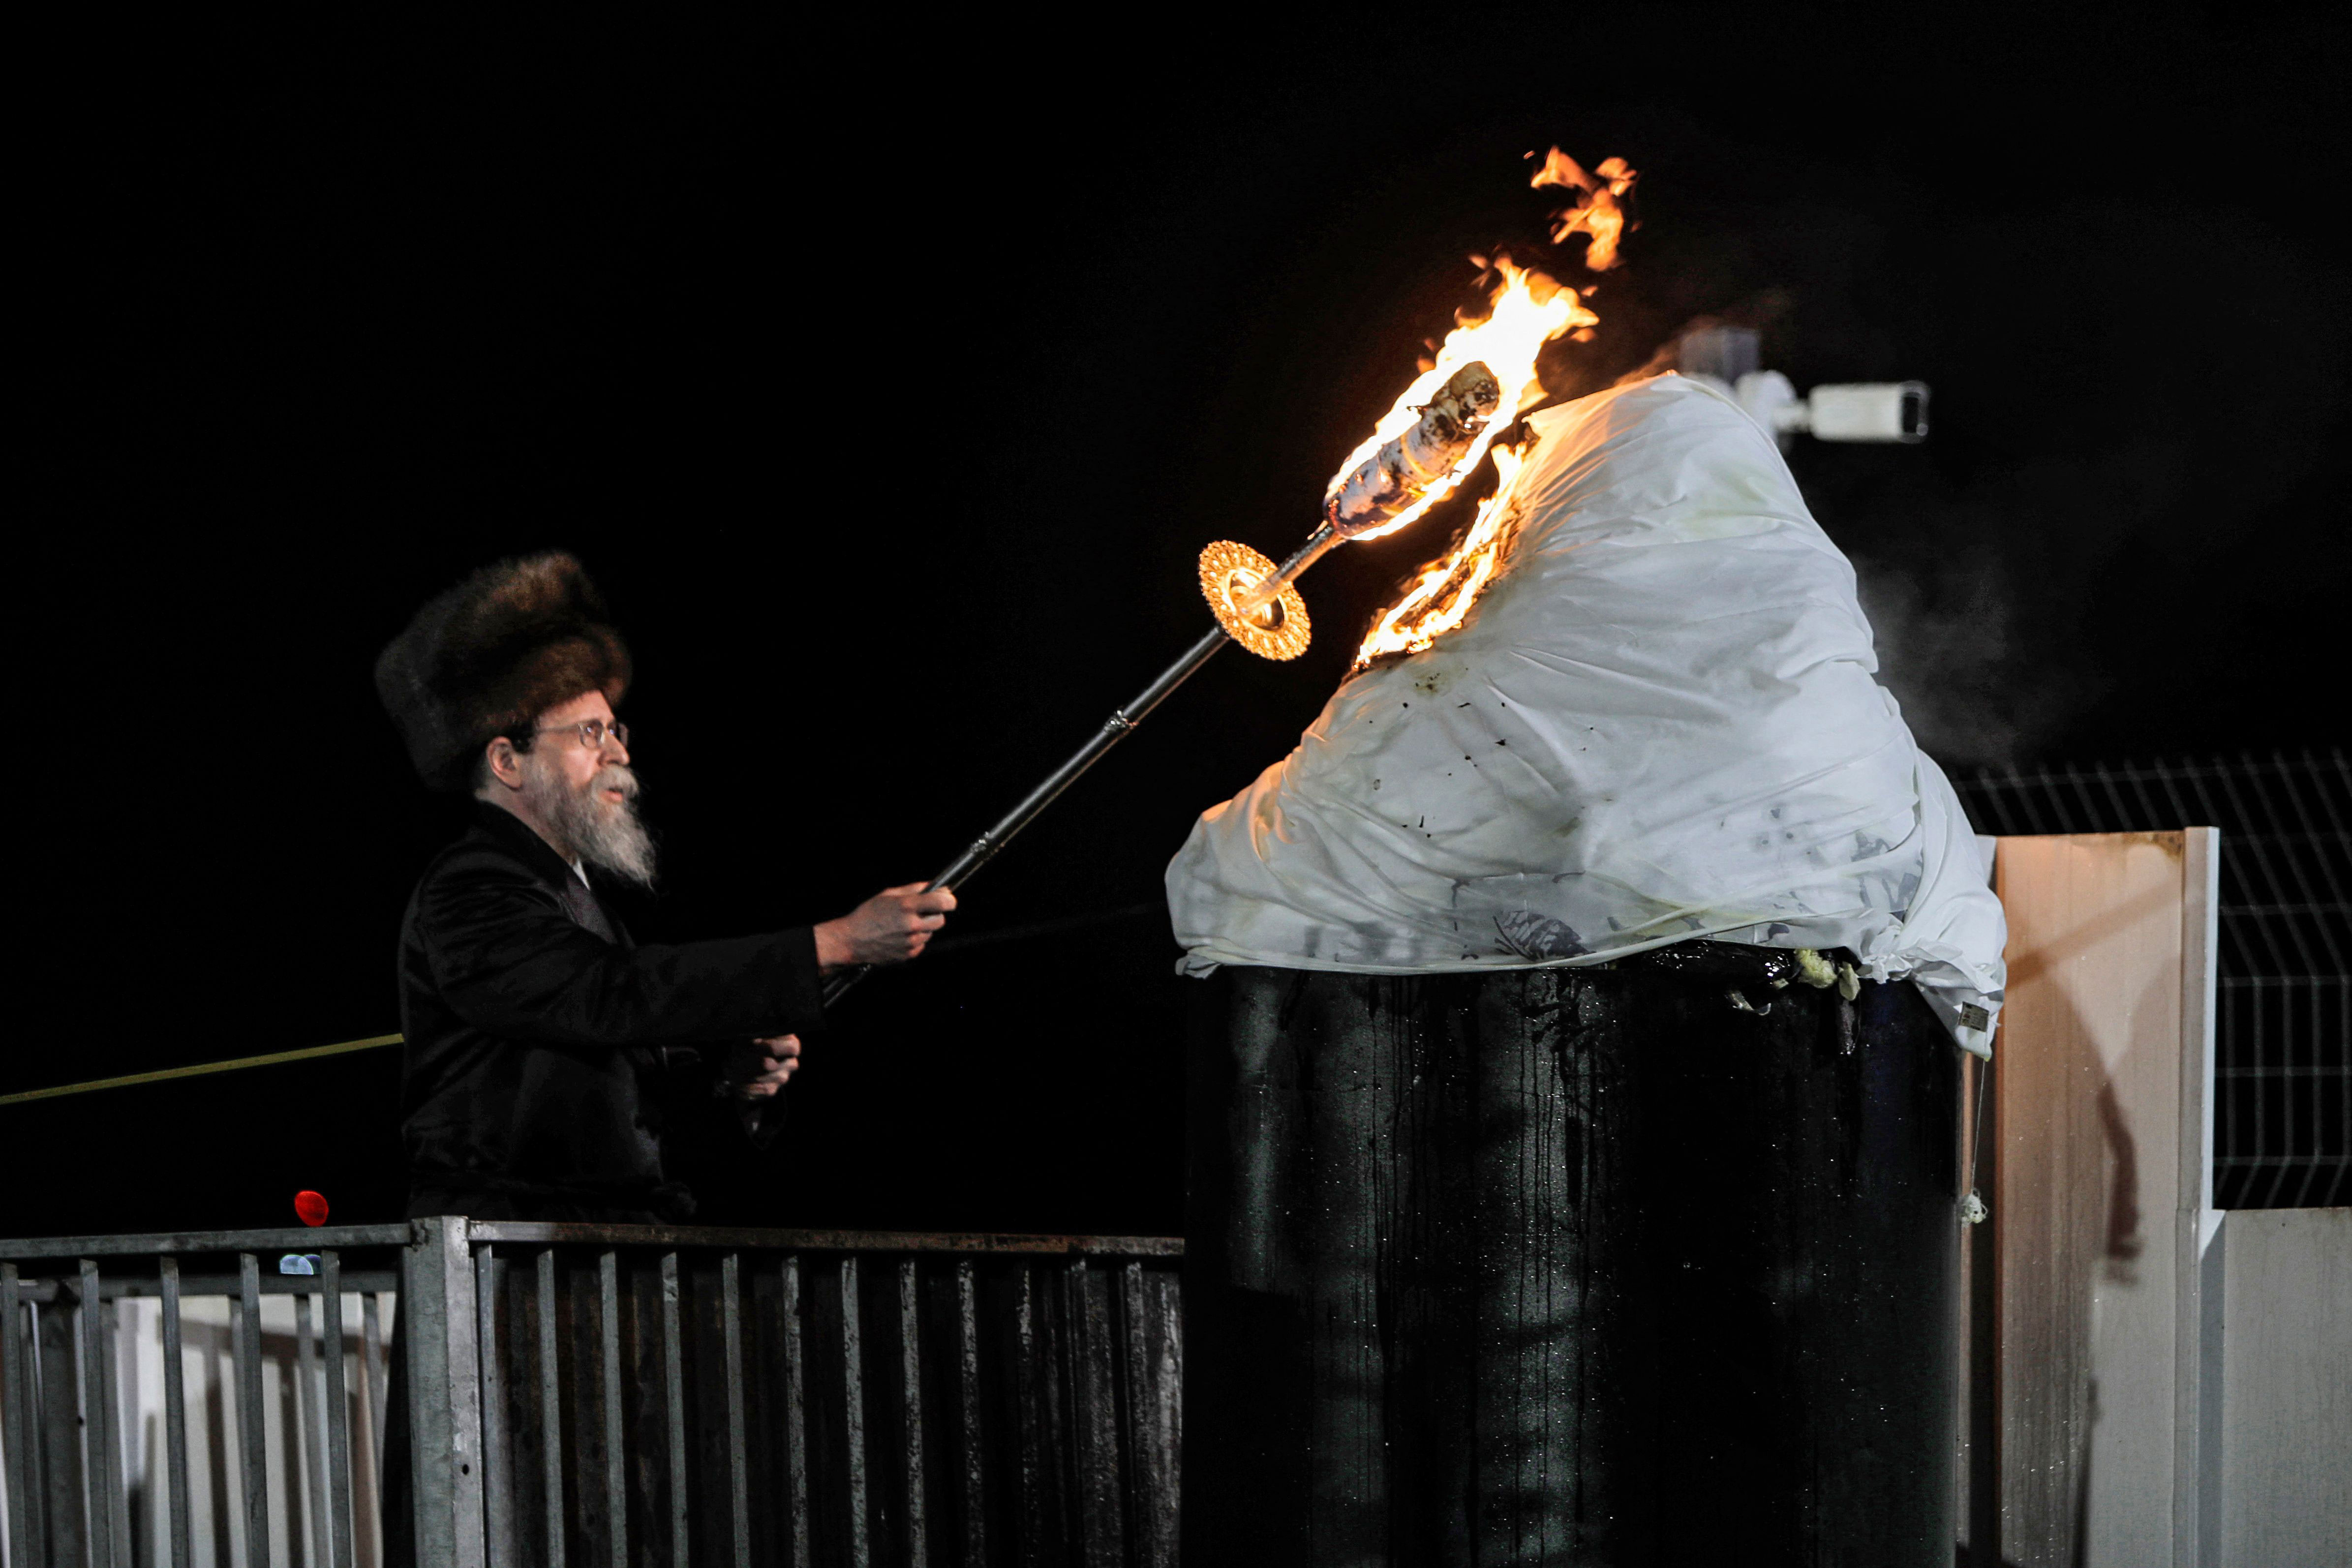 A rabbi lights a bonfire at the grave site of Rabbi Shimon Bar Yochai. Up to 100,000 Jews are estimated to have attended last night's event.